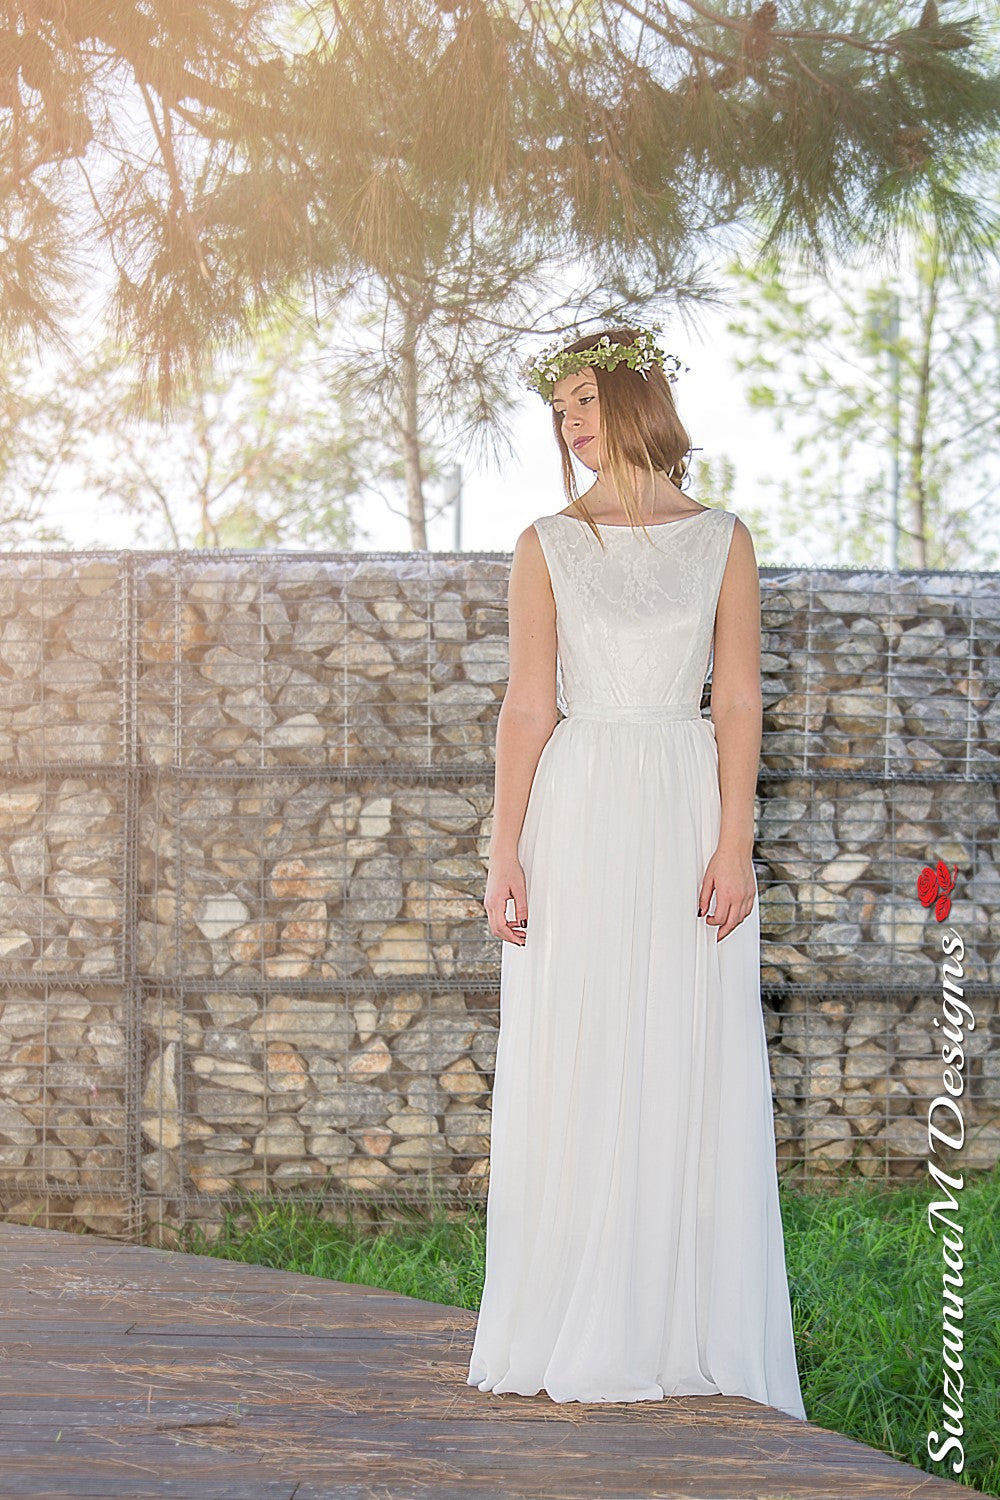 Alba Handmade Vintage Wedding Dress - Wedding Dress - SuzannaM Designs